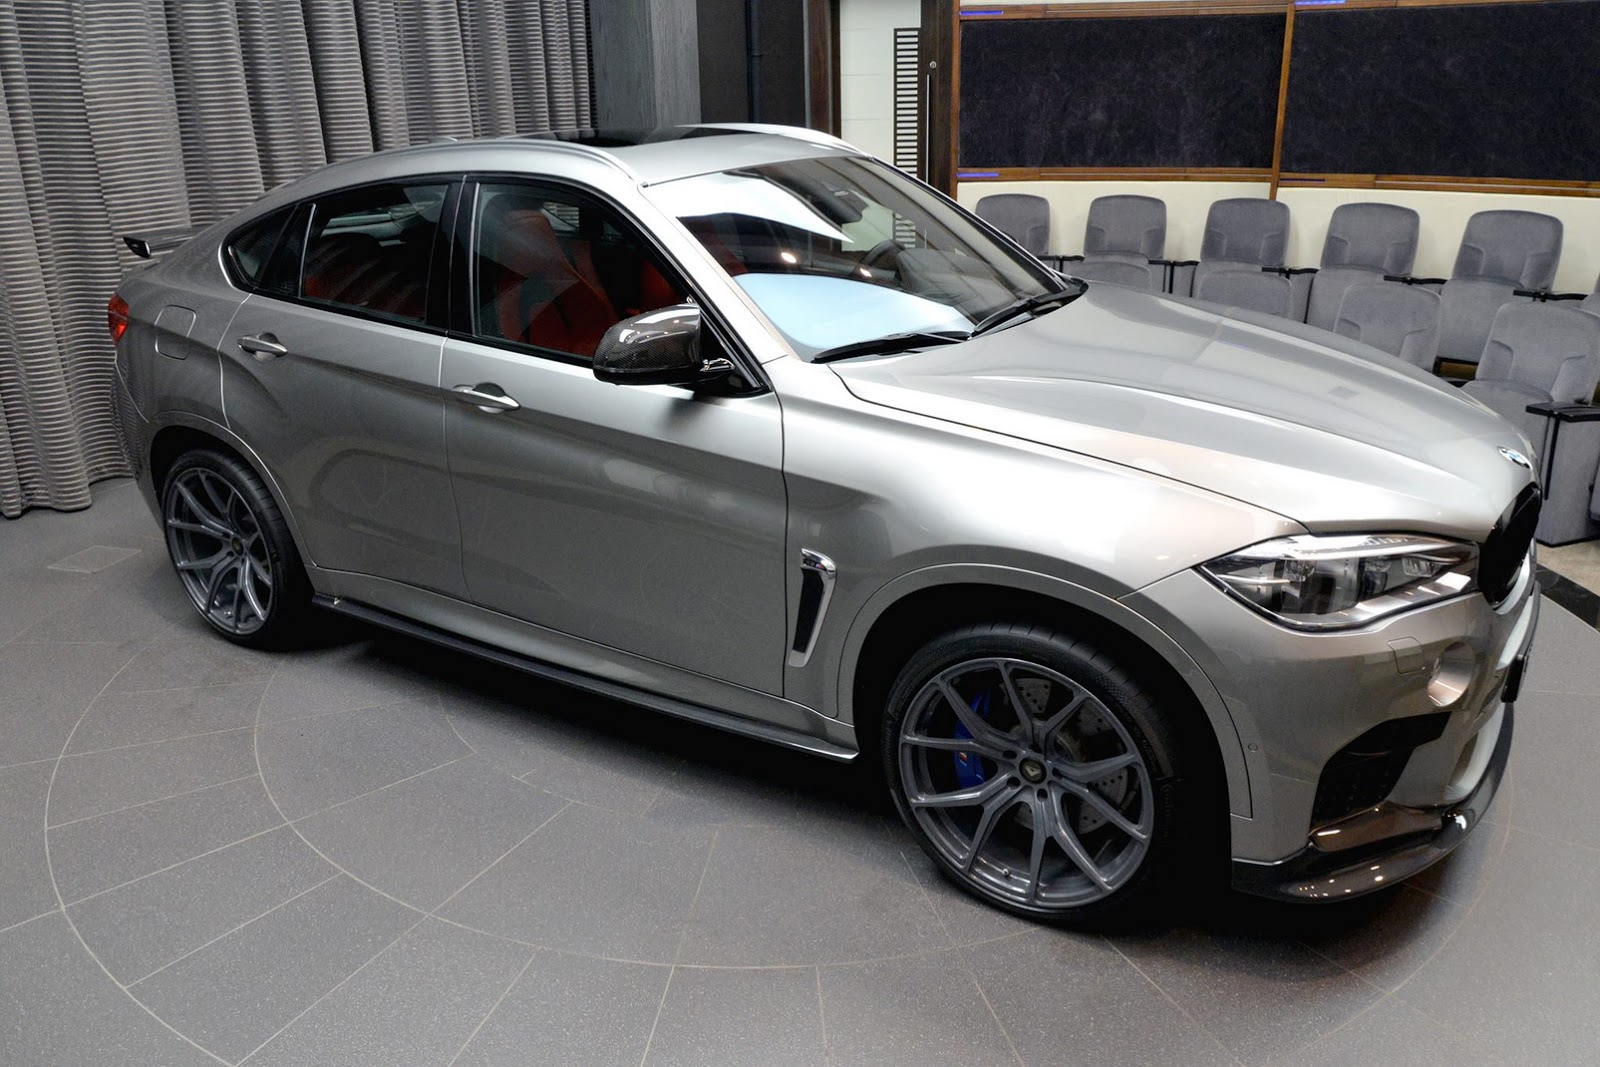 Bmw X6 M Gets A Makeover At Abu Dhabi Dealership Carscoops